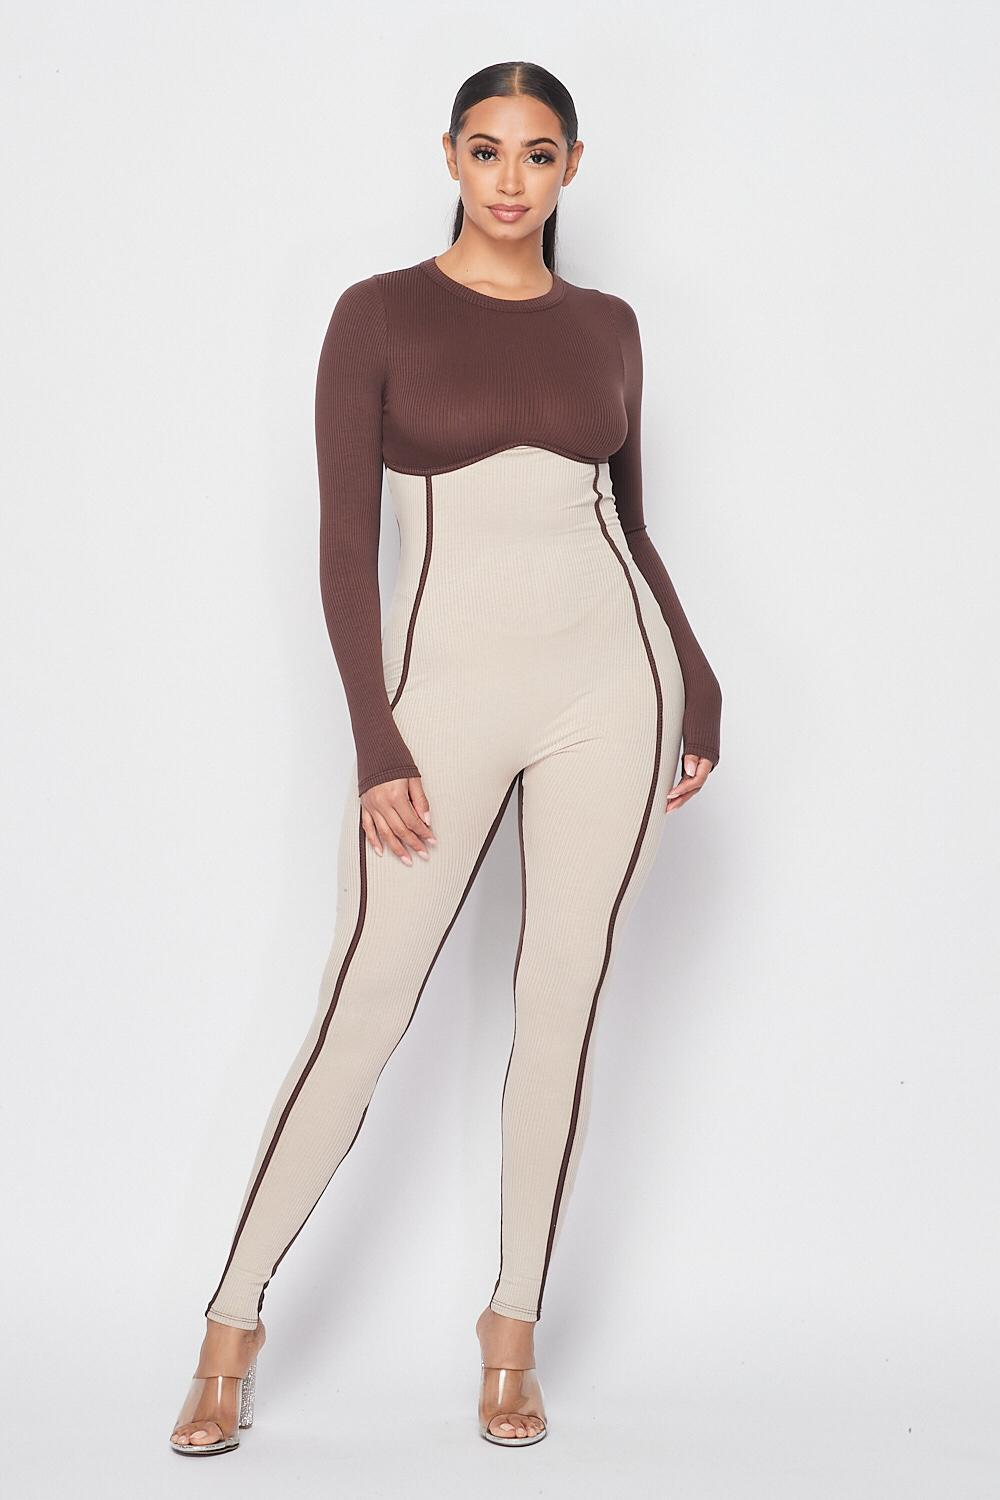 Brown and Beige Jumpsuit